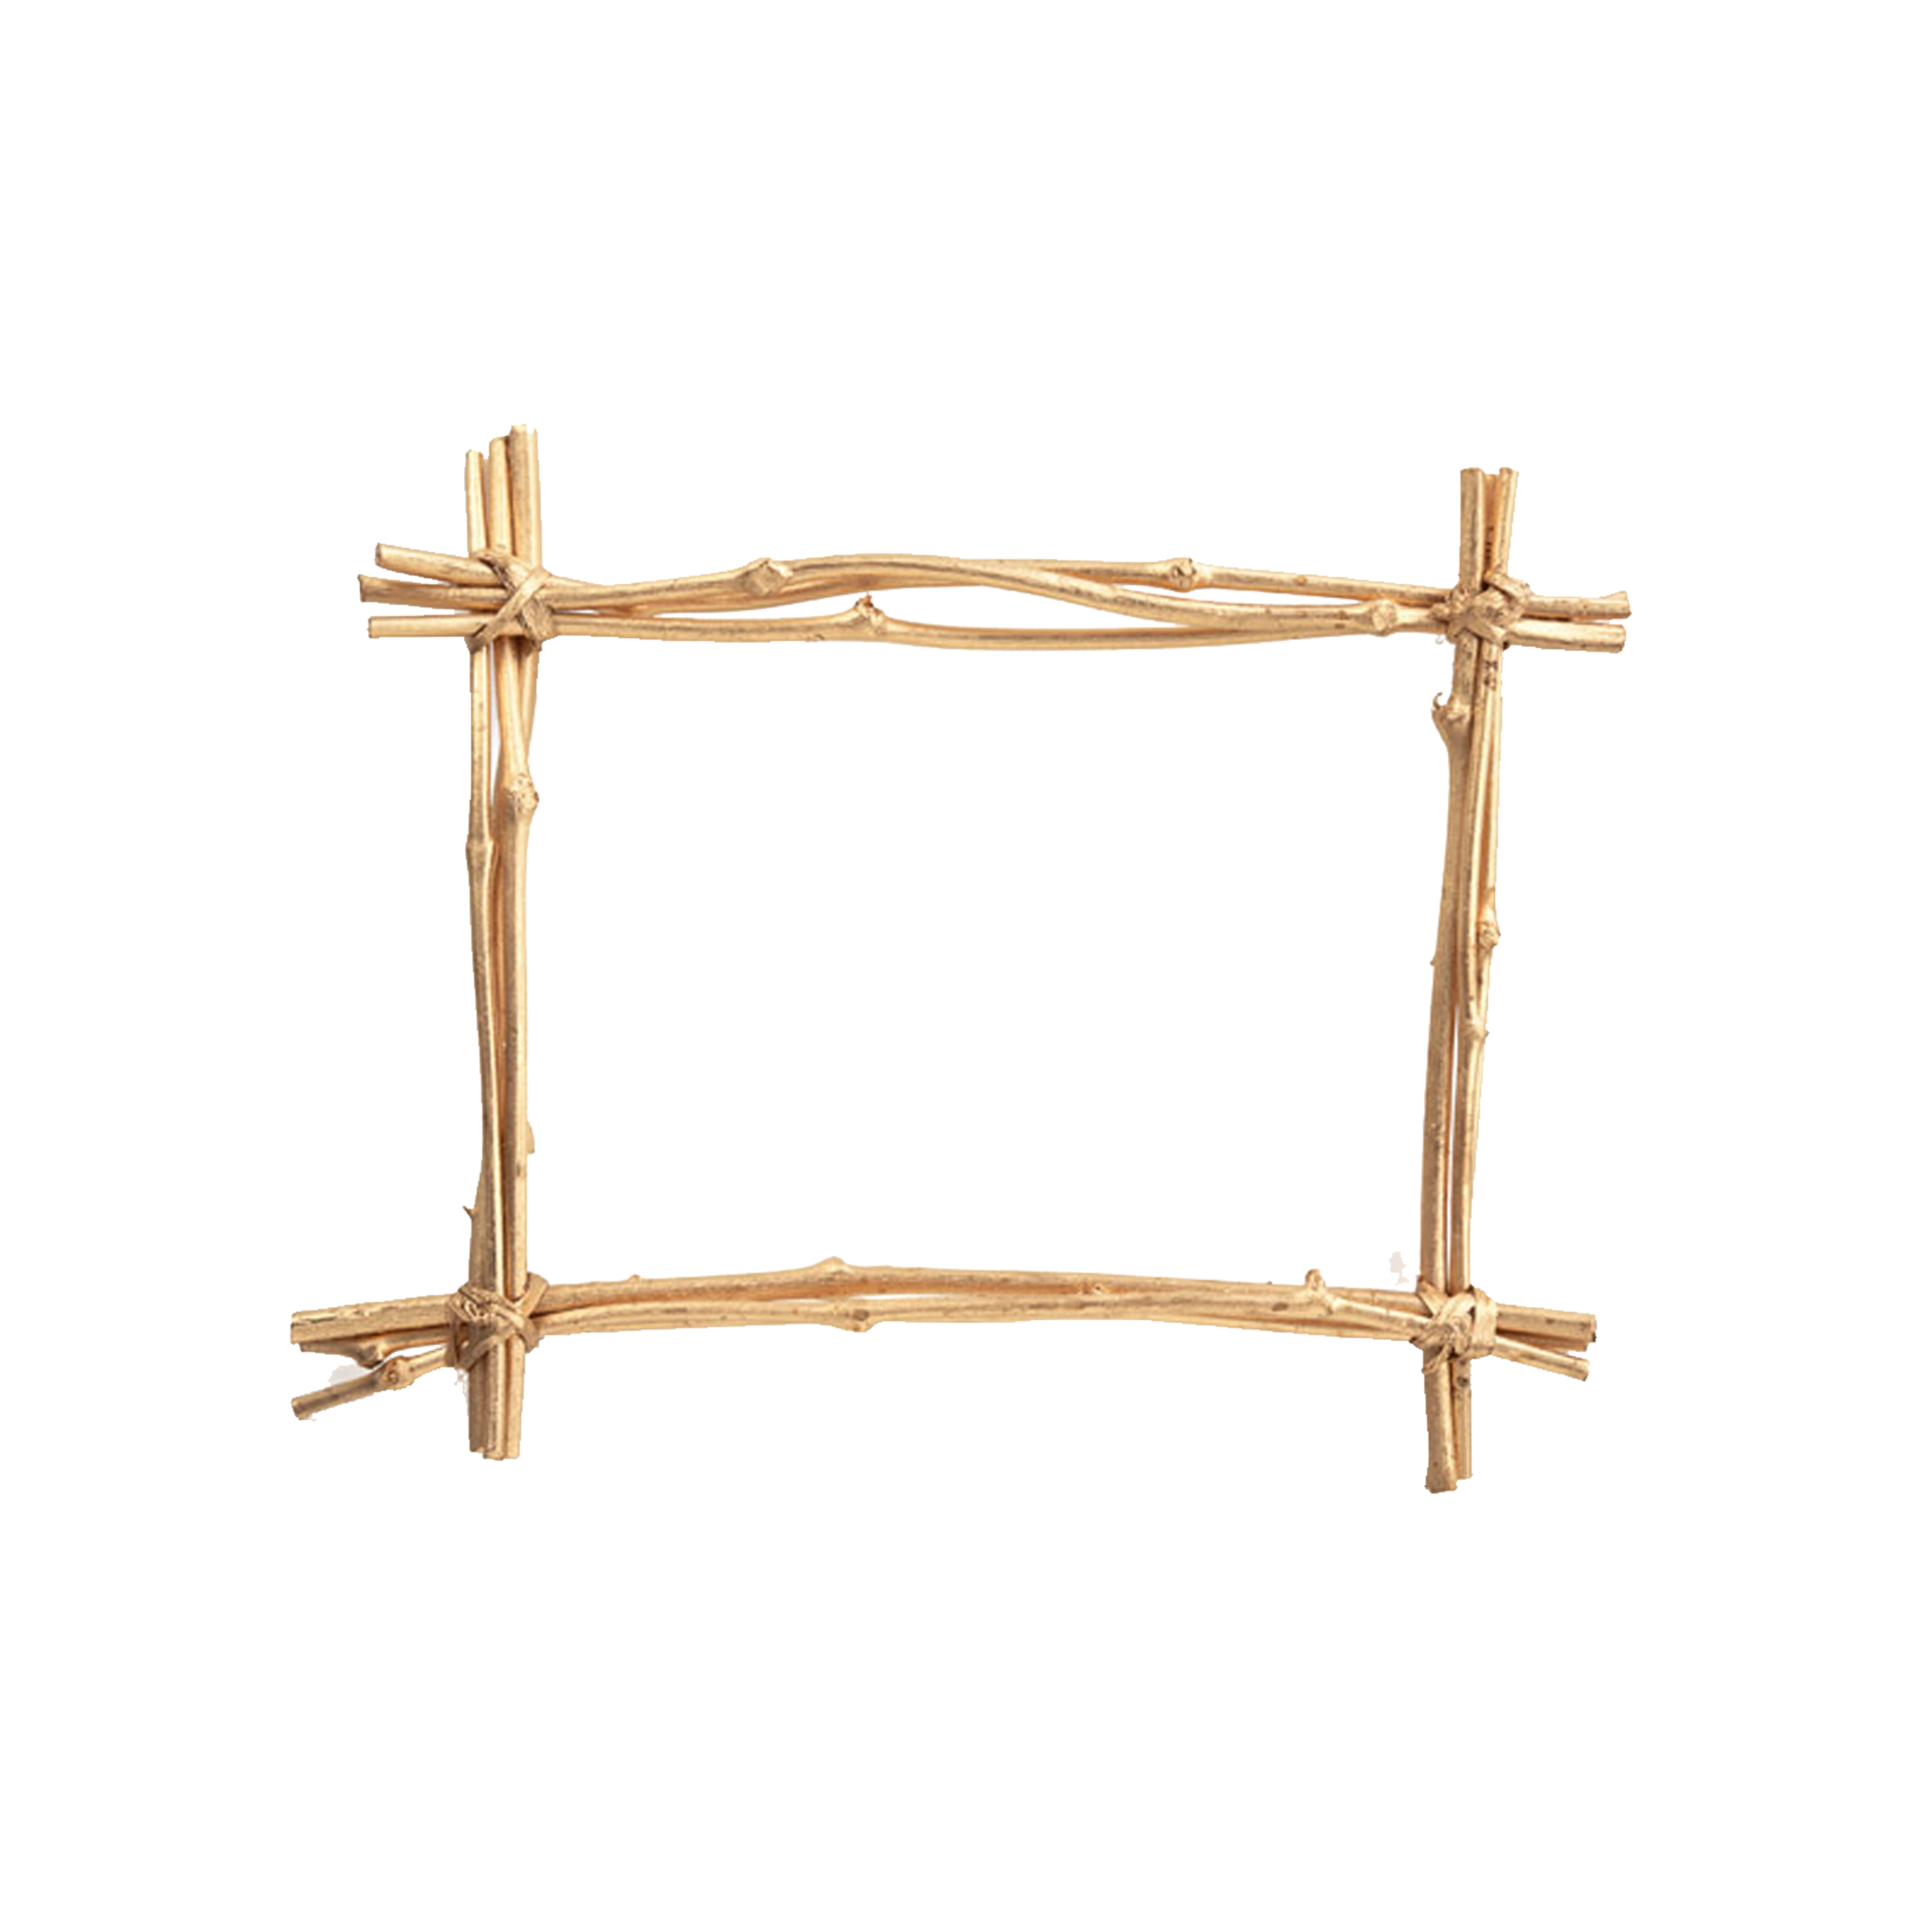 Picture frame clip art. Bamboo border png